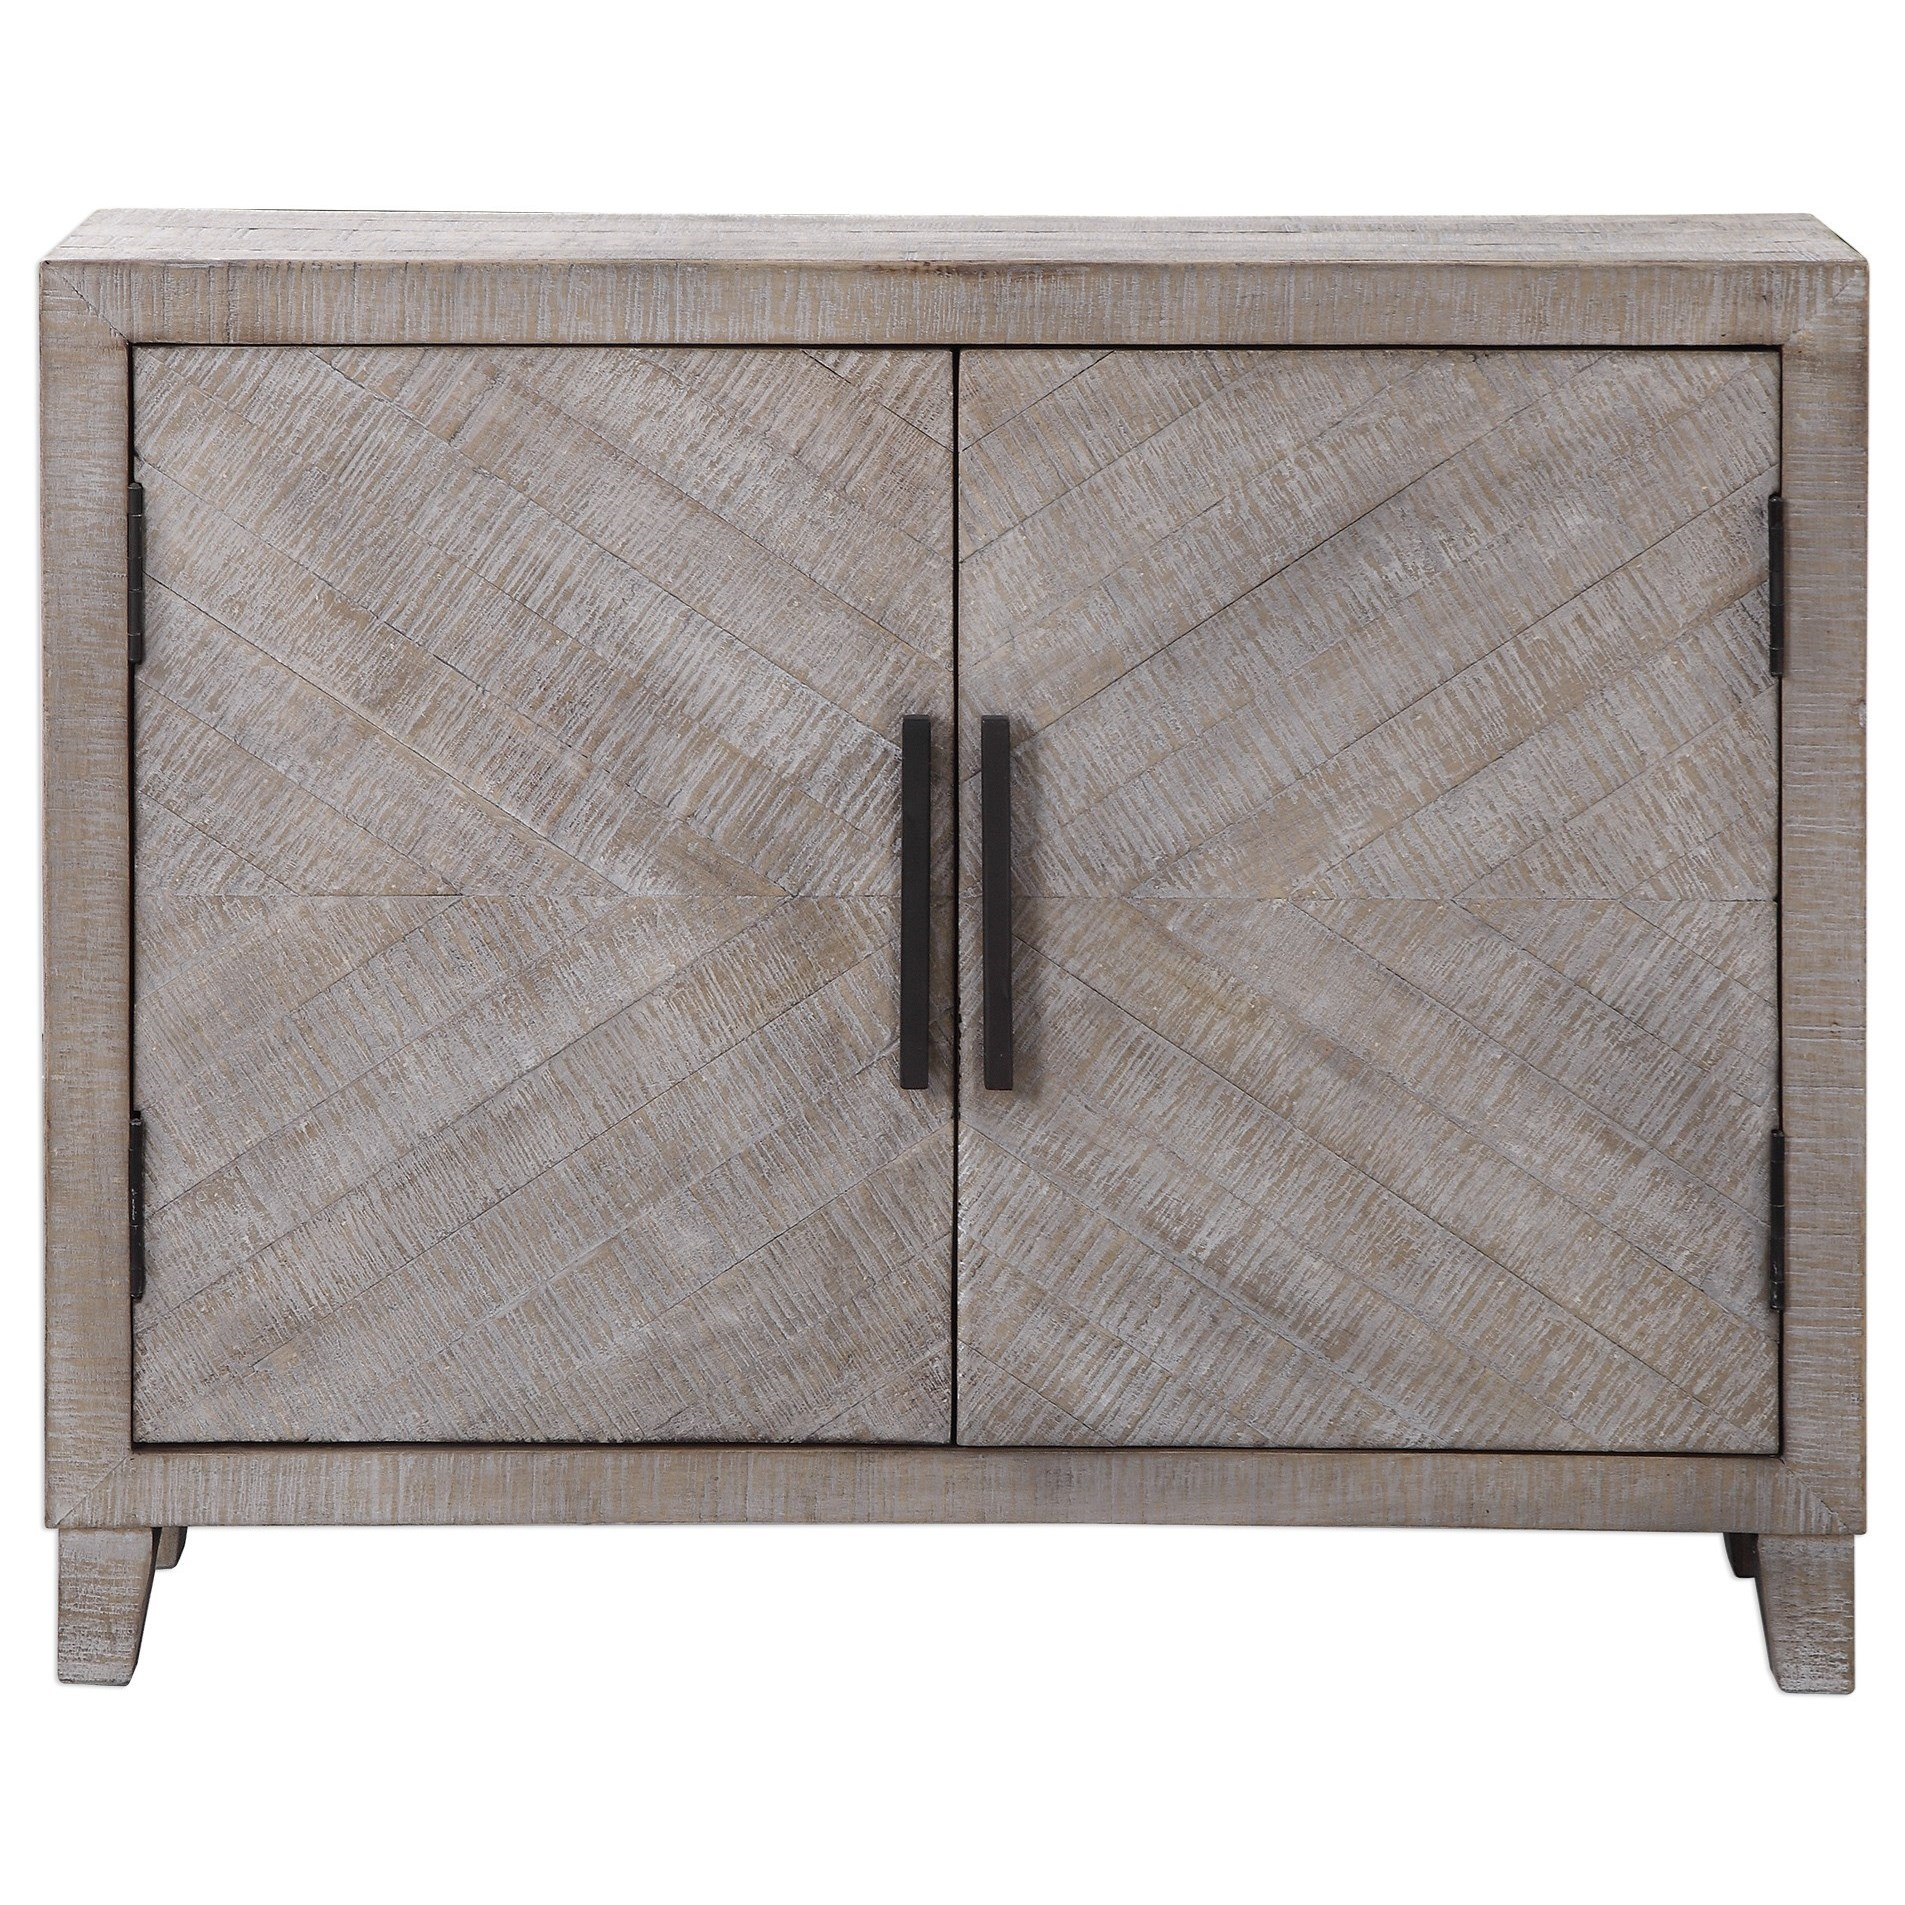 Accent Furniture - Chests Adalind White Washed Accent Cabine by Uttermost at Upper Room Home Furnishings